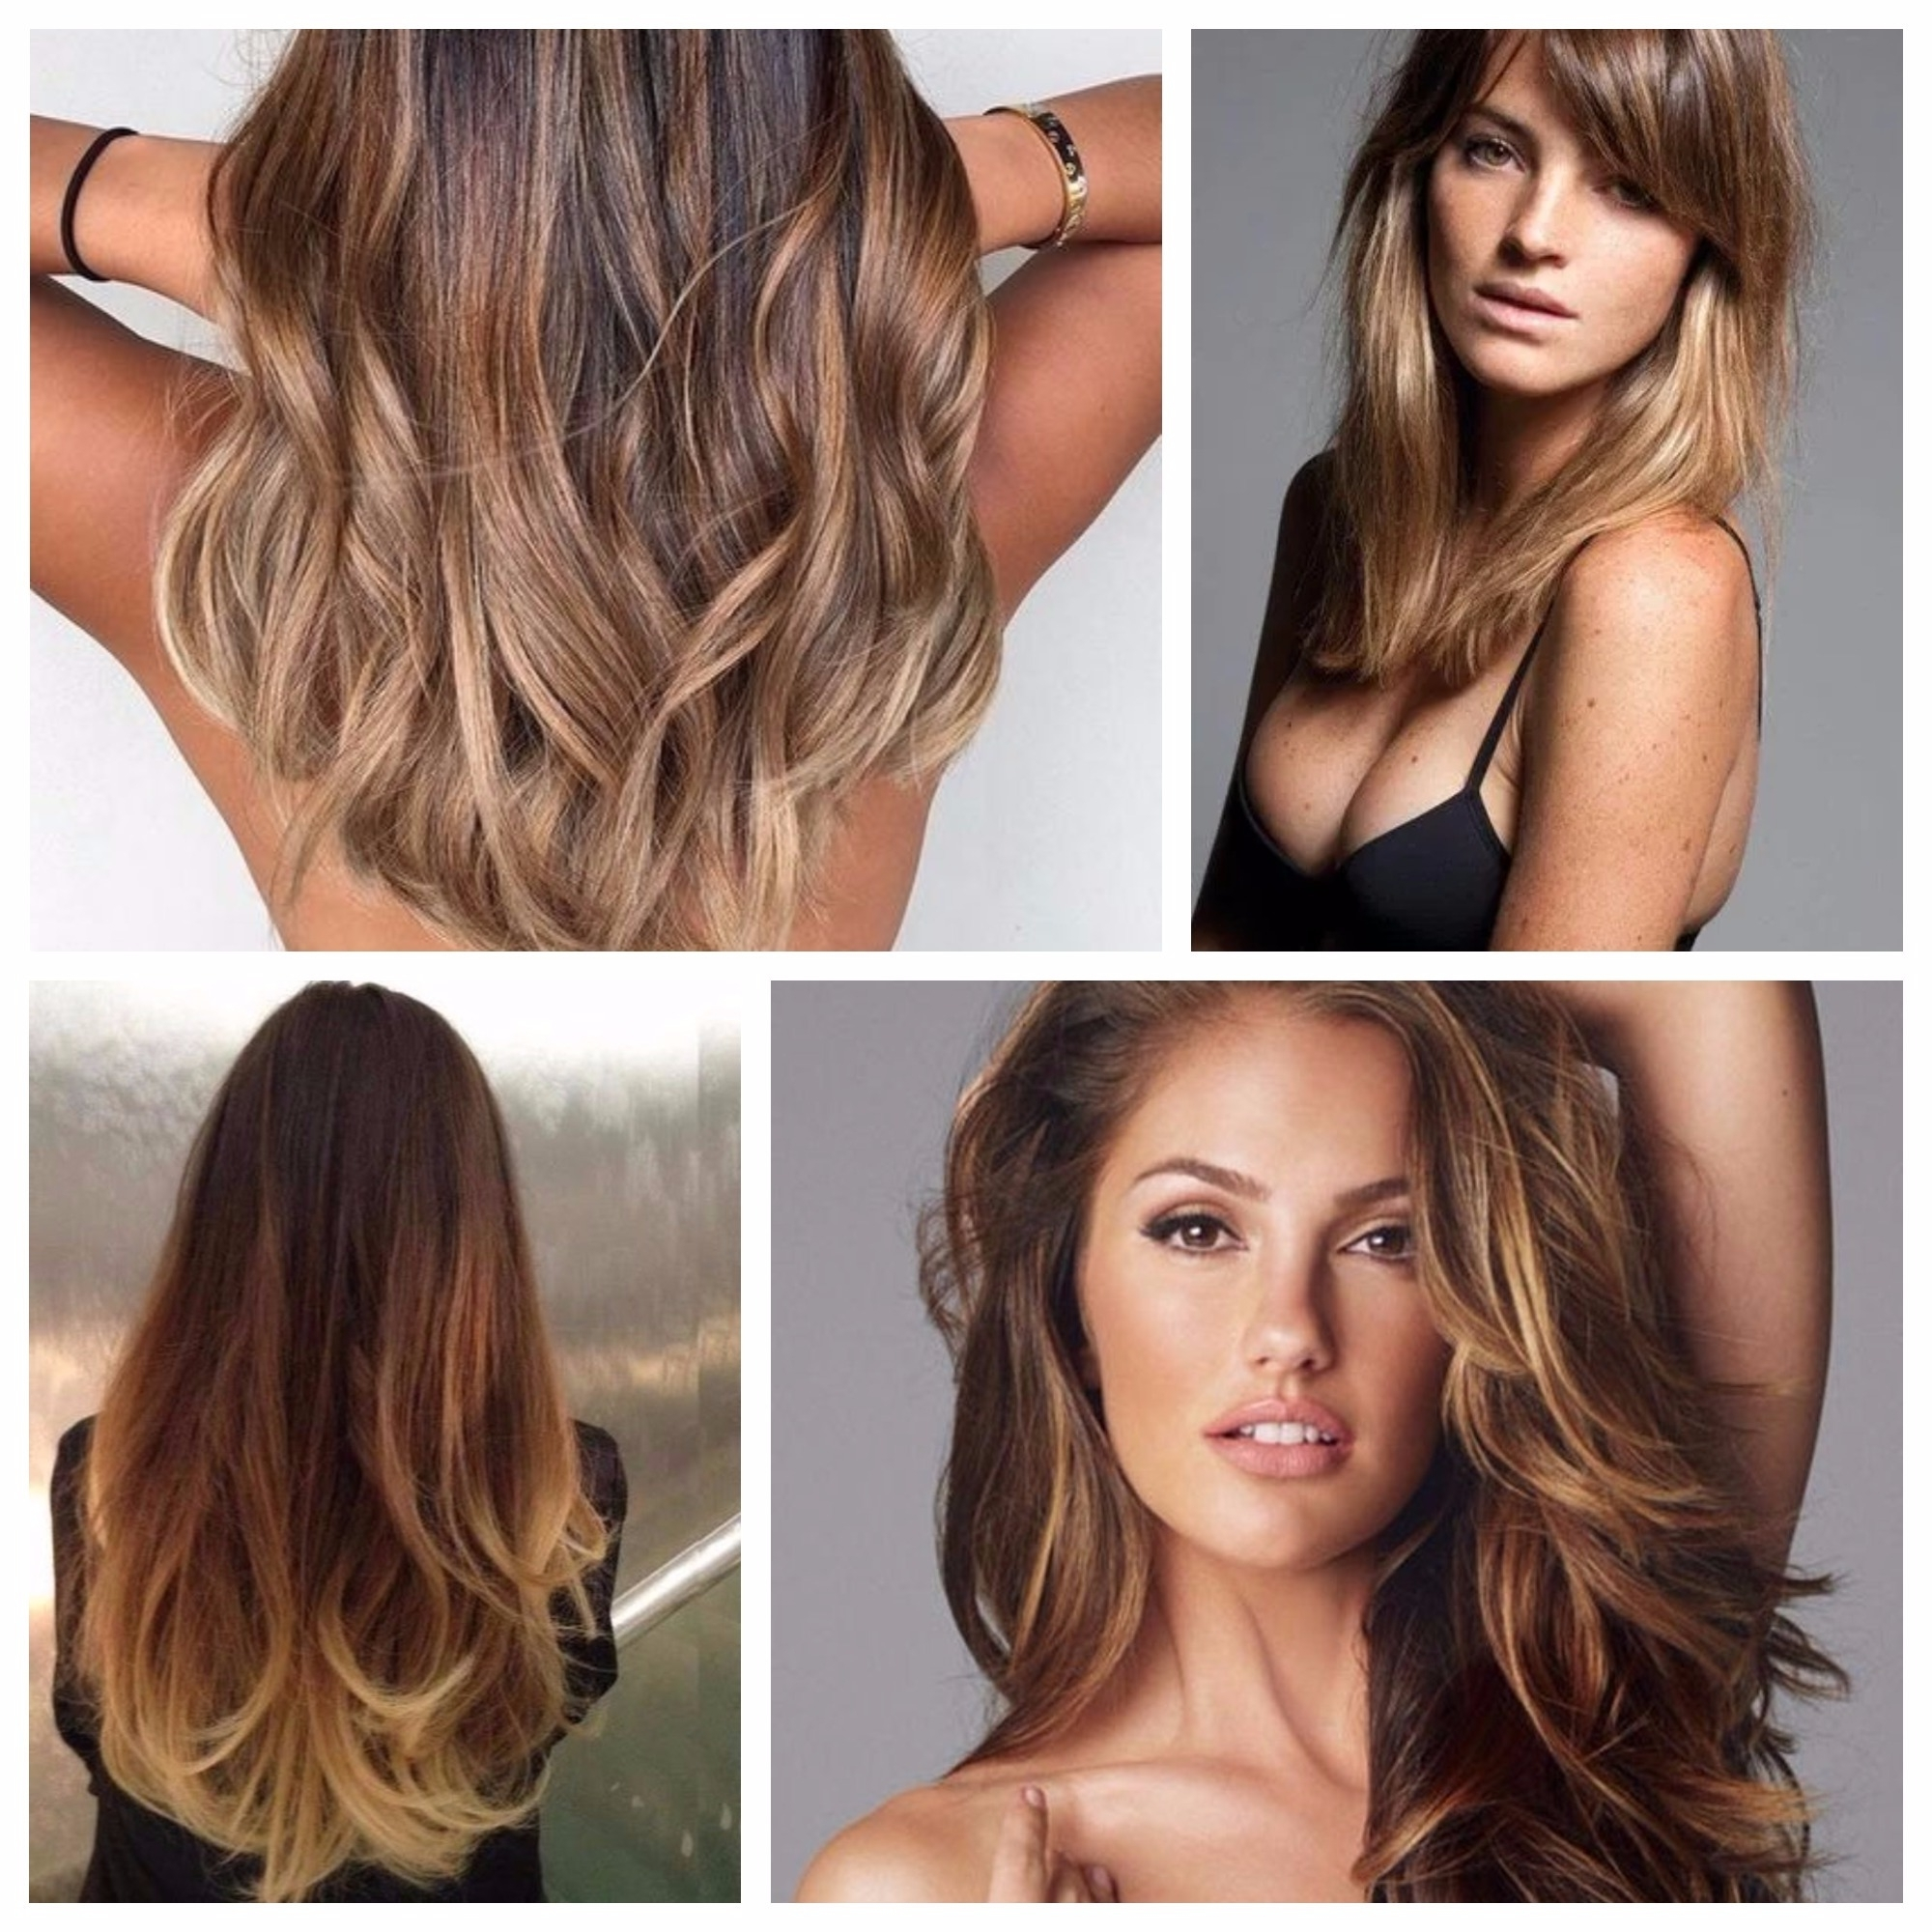 Preferred Dark Locks Blonde Hairstyles With Caramel Highlights Intended For Brown Hair With Balayage Caramel Highlights – Hair World Magazine (View 18 of 20)